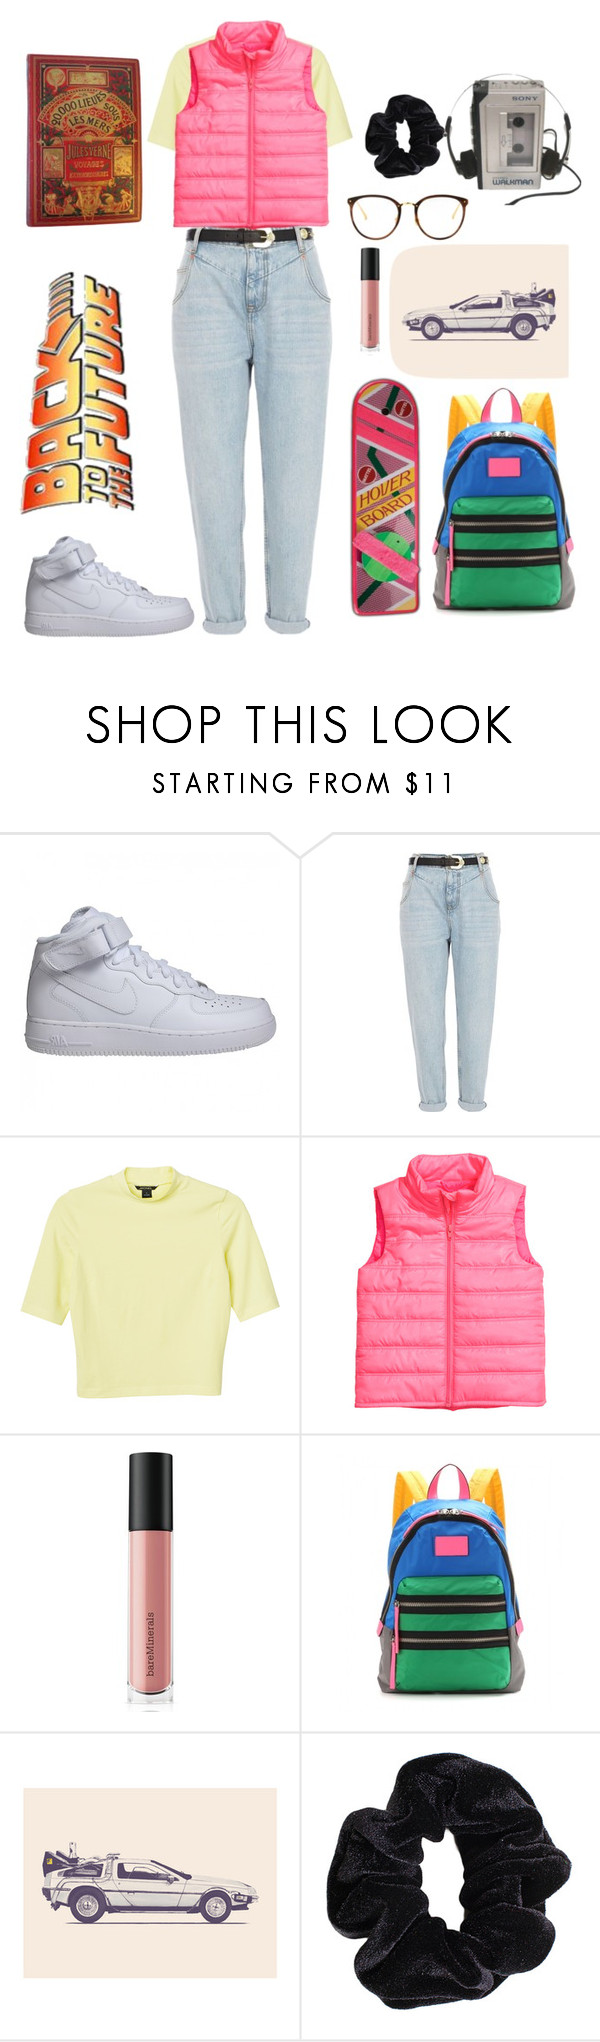 """Back to the future part I"" by aby-ocampo ❤ liked on Polyvore featuring NIKE, River Island, Monki, Bare Escentuals, Marc by Marc Jacobs, American Apparel and Sony"